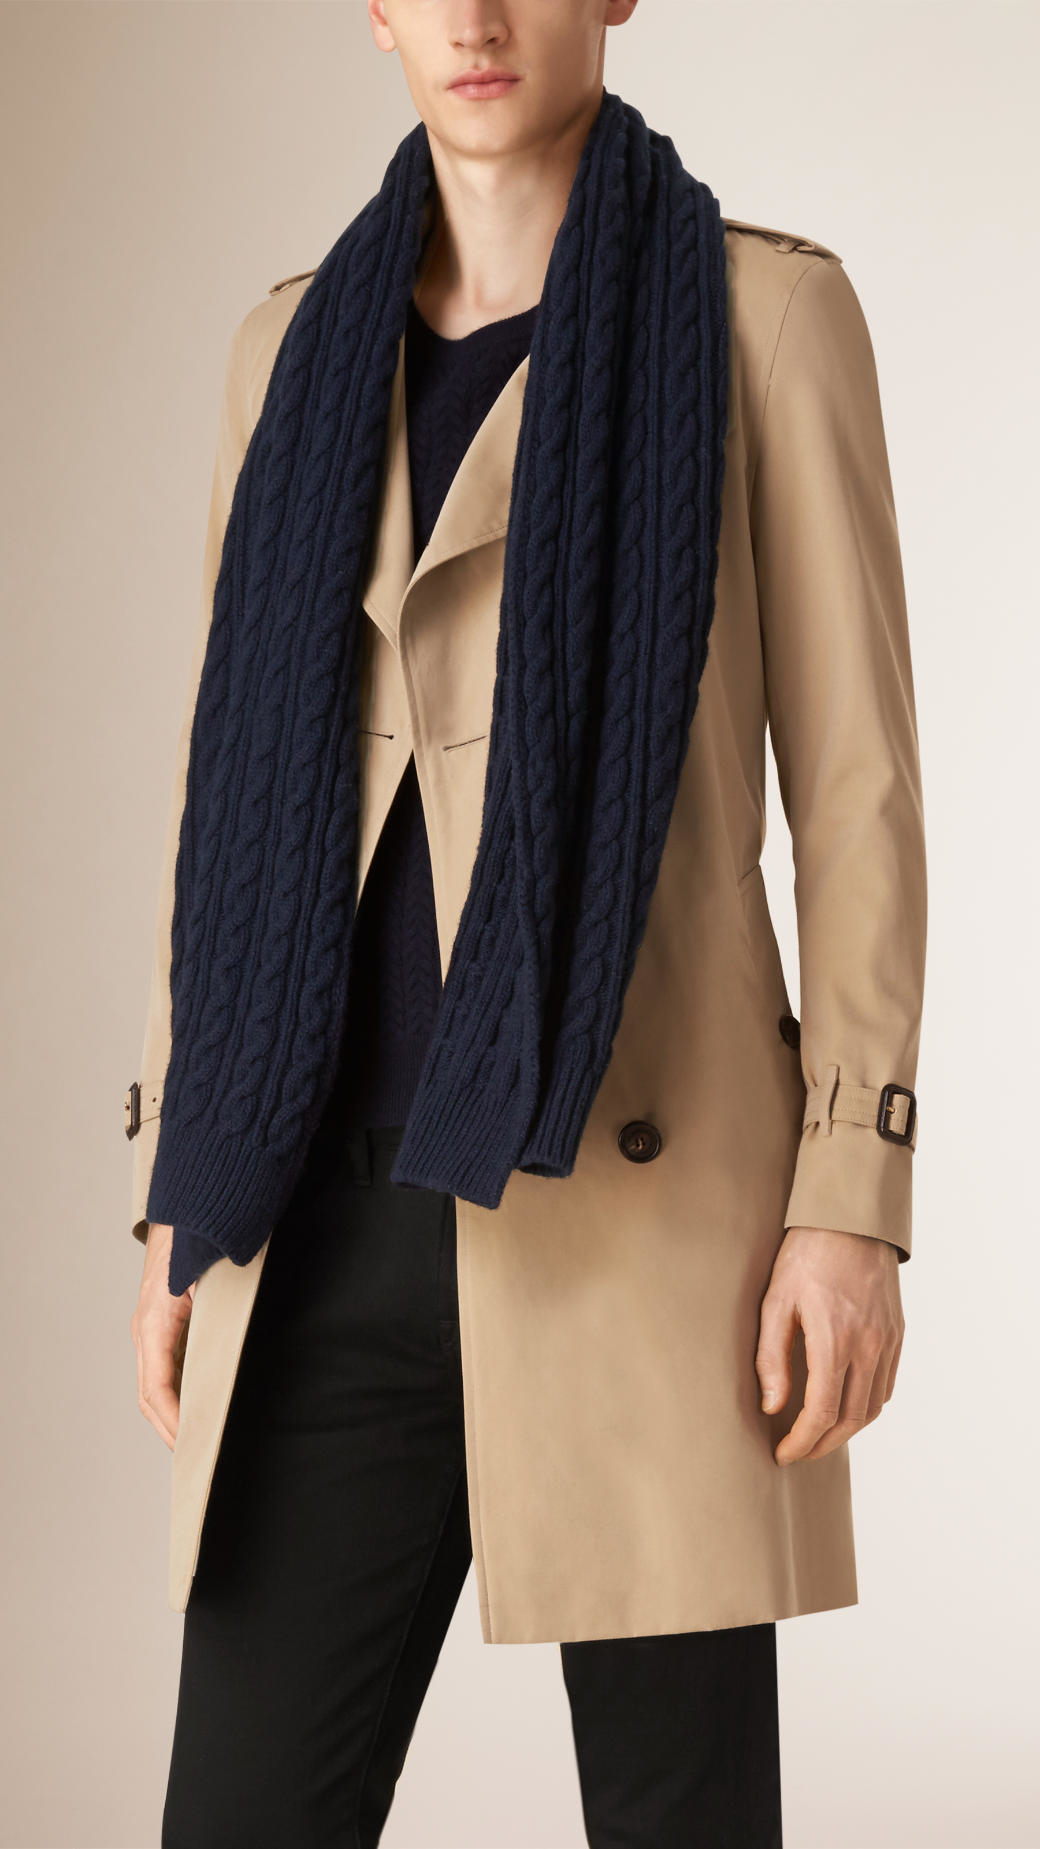 Knitting Pattern Burberry Scarf : Burberry Wool Cashmere Cable Knit Scarf Navy in Blue Lyst